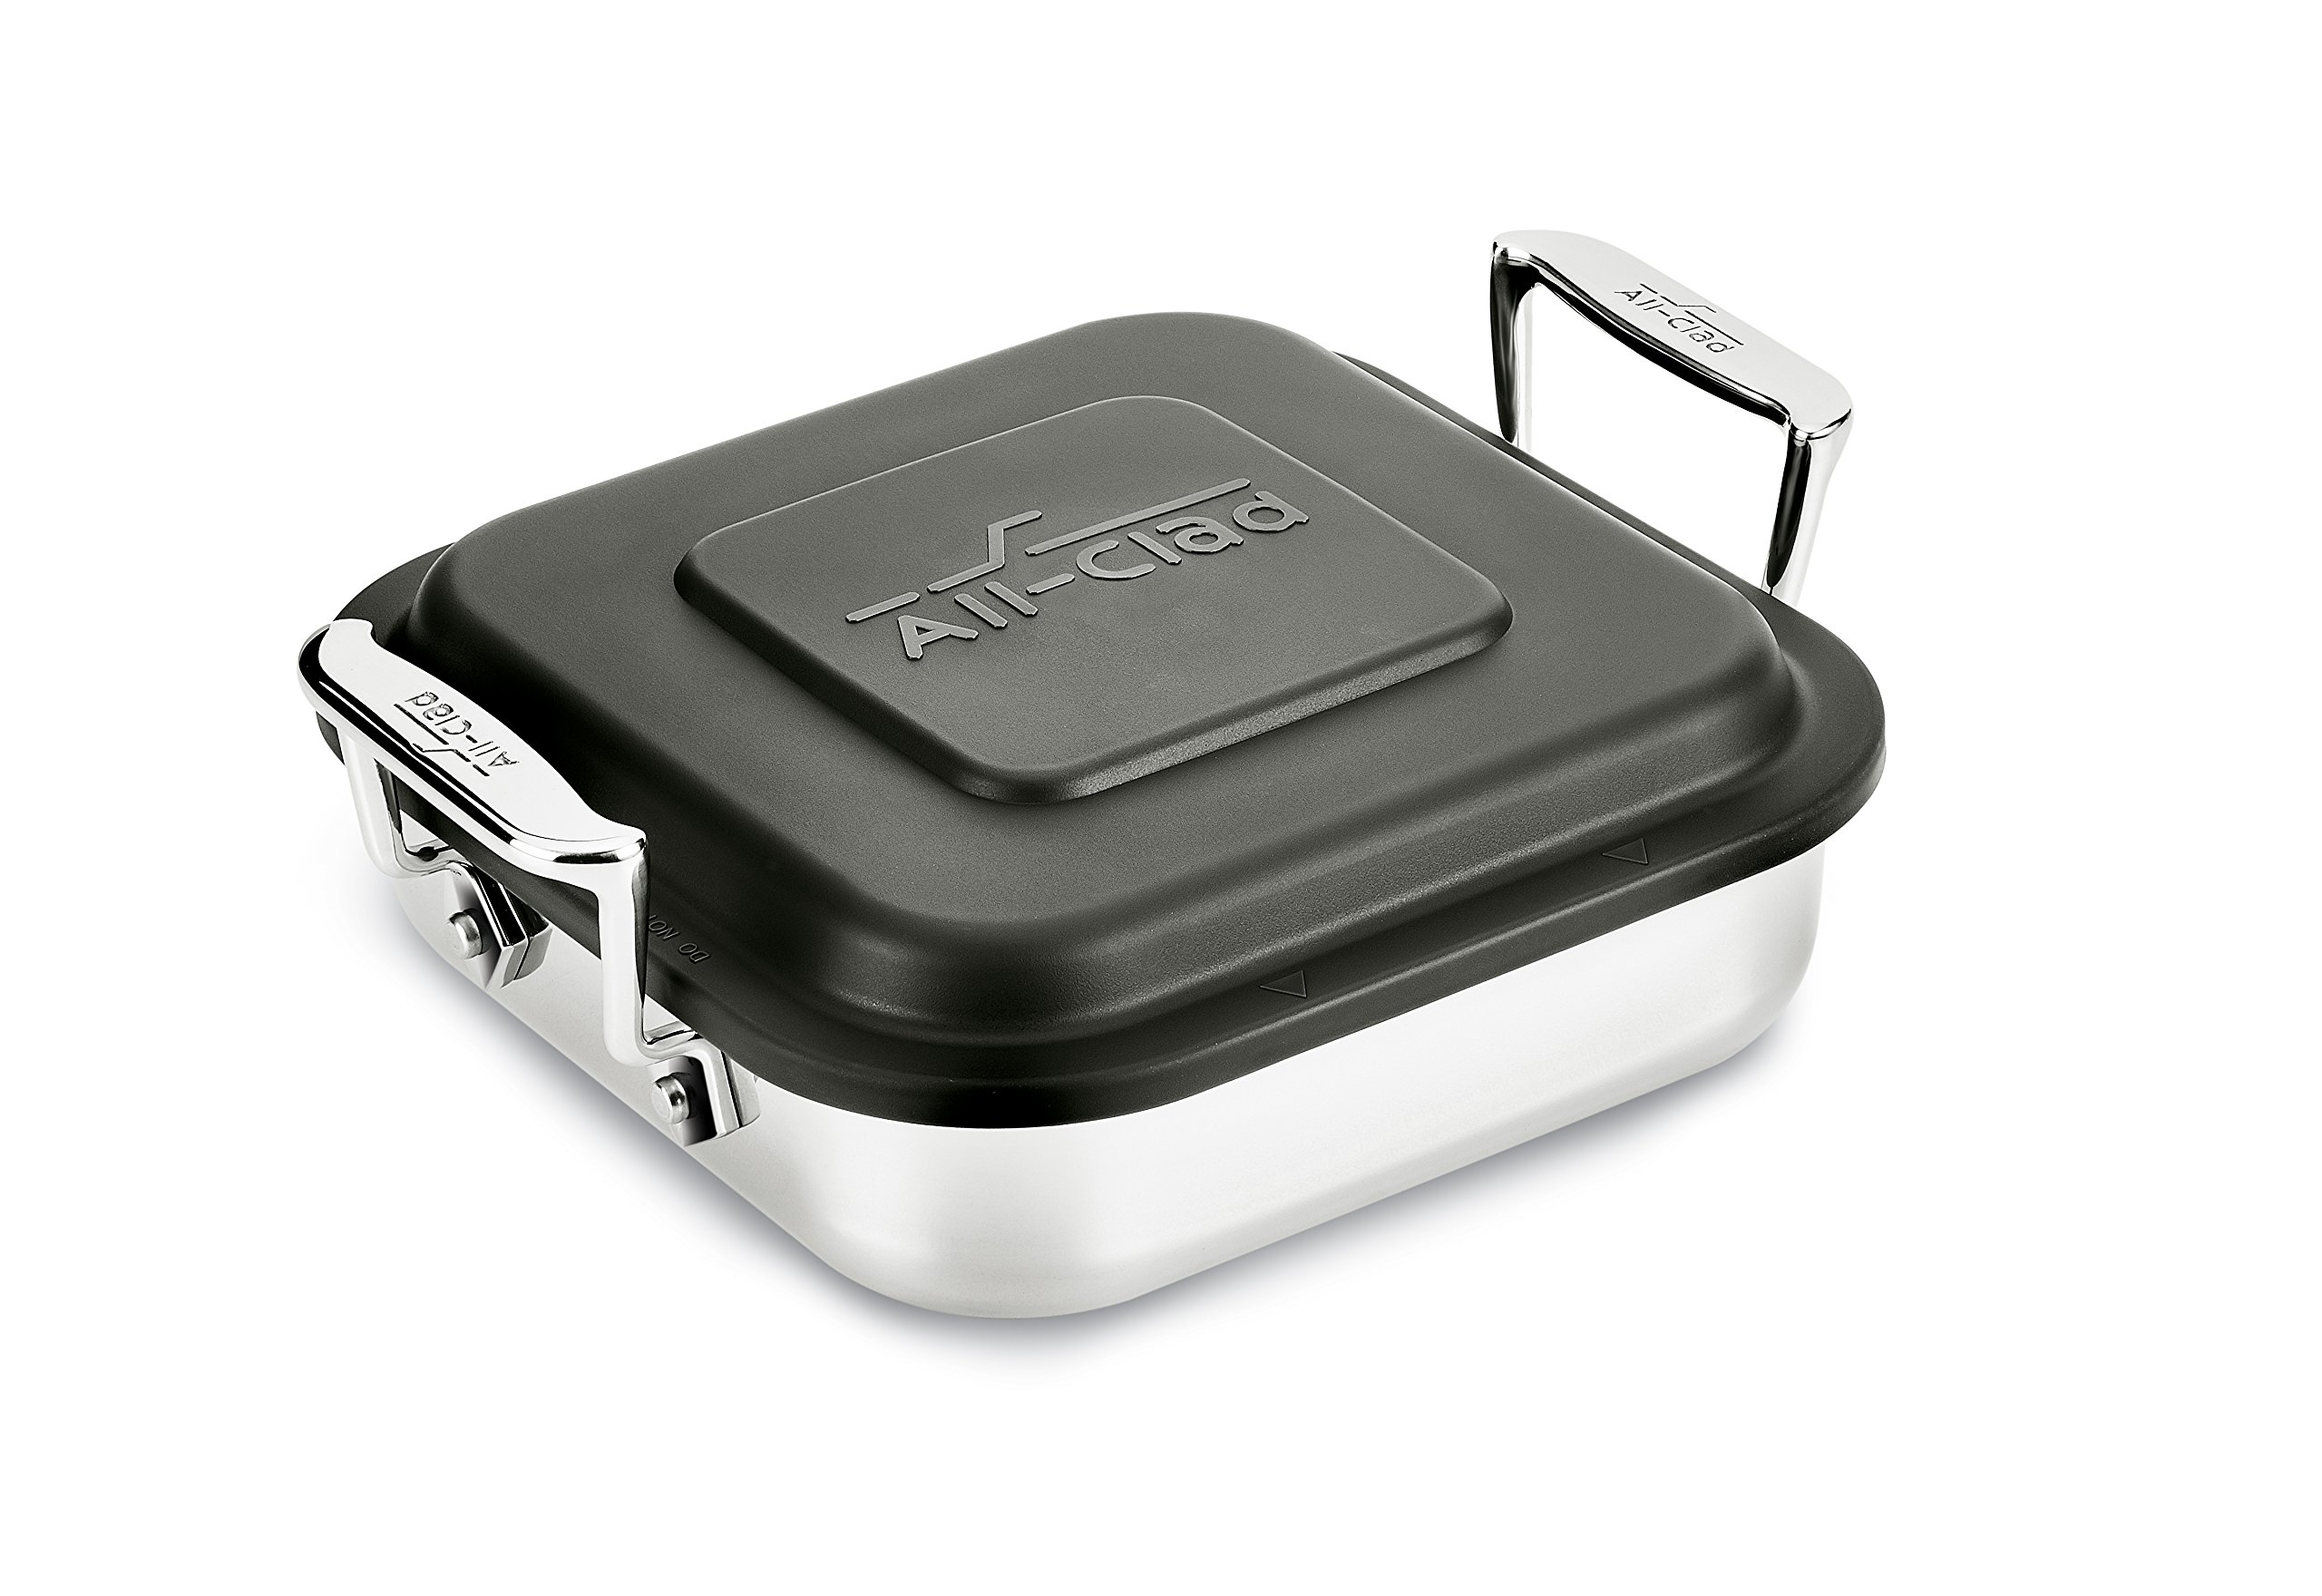 All-Clad E9019464 Gourmet Accessories Stainless Steel Square Baker w/lid cookware, 8-Inch, Silver by All-Clad (Image #1)